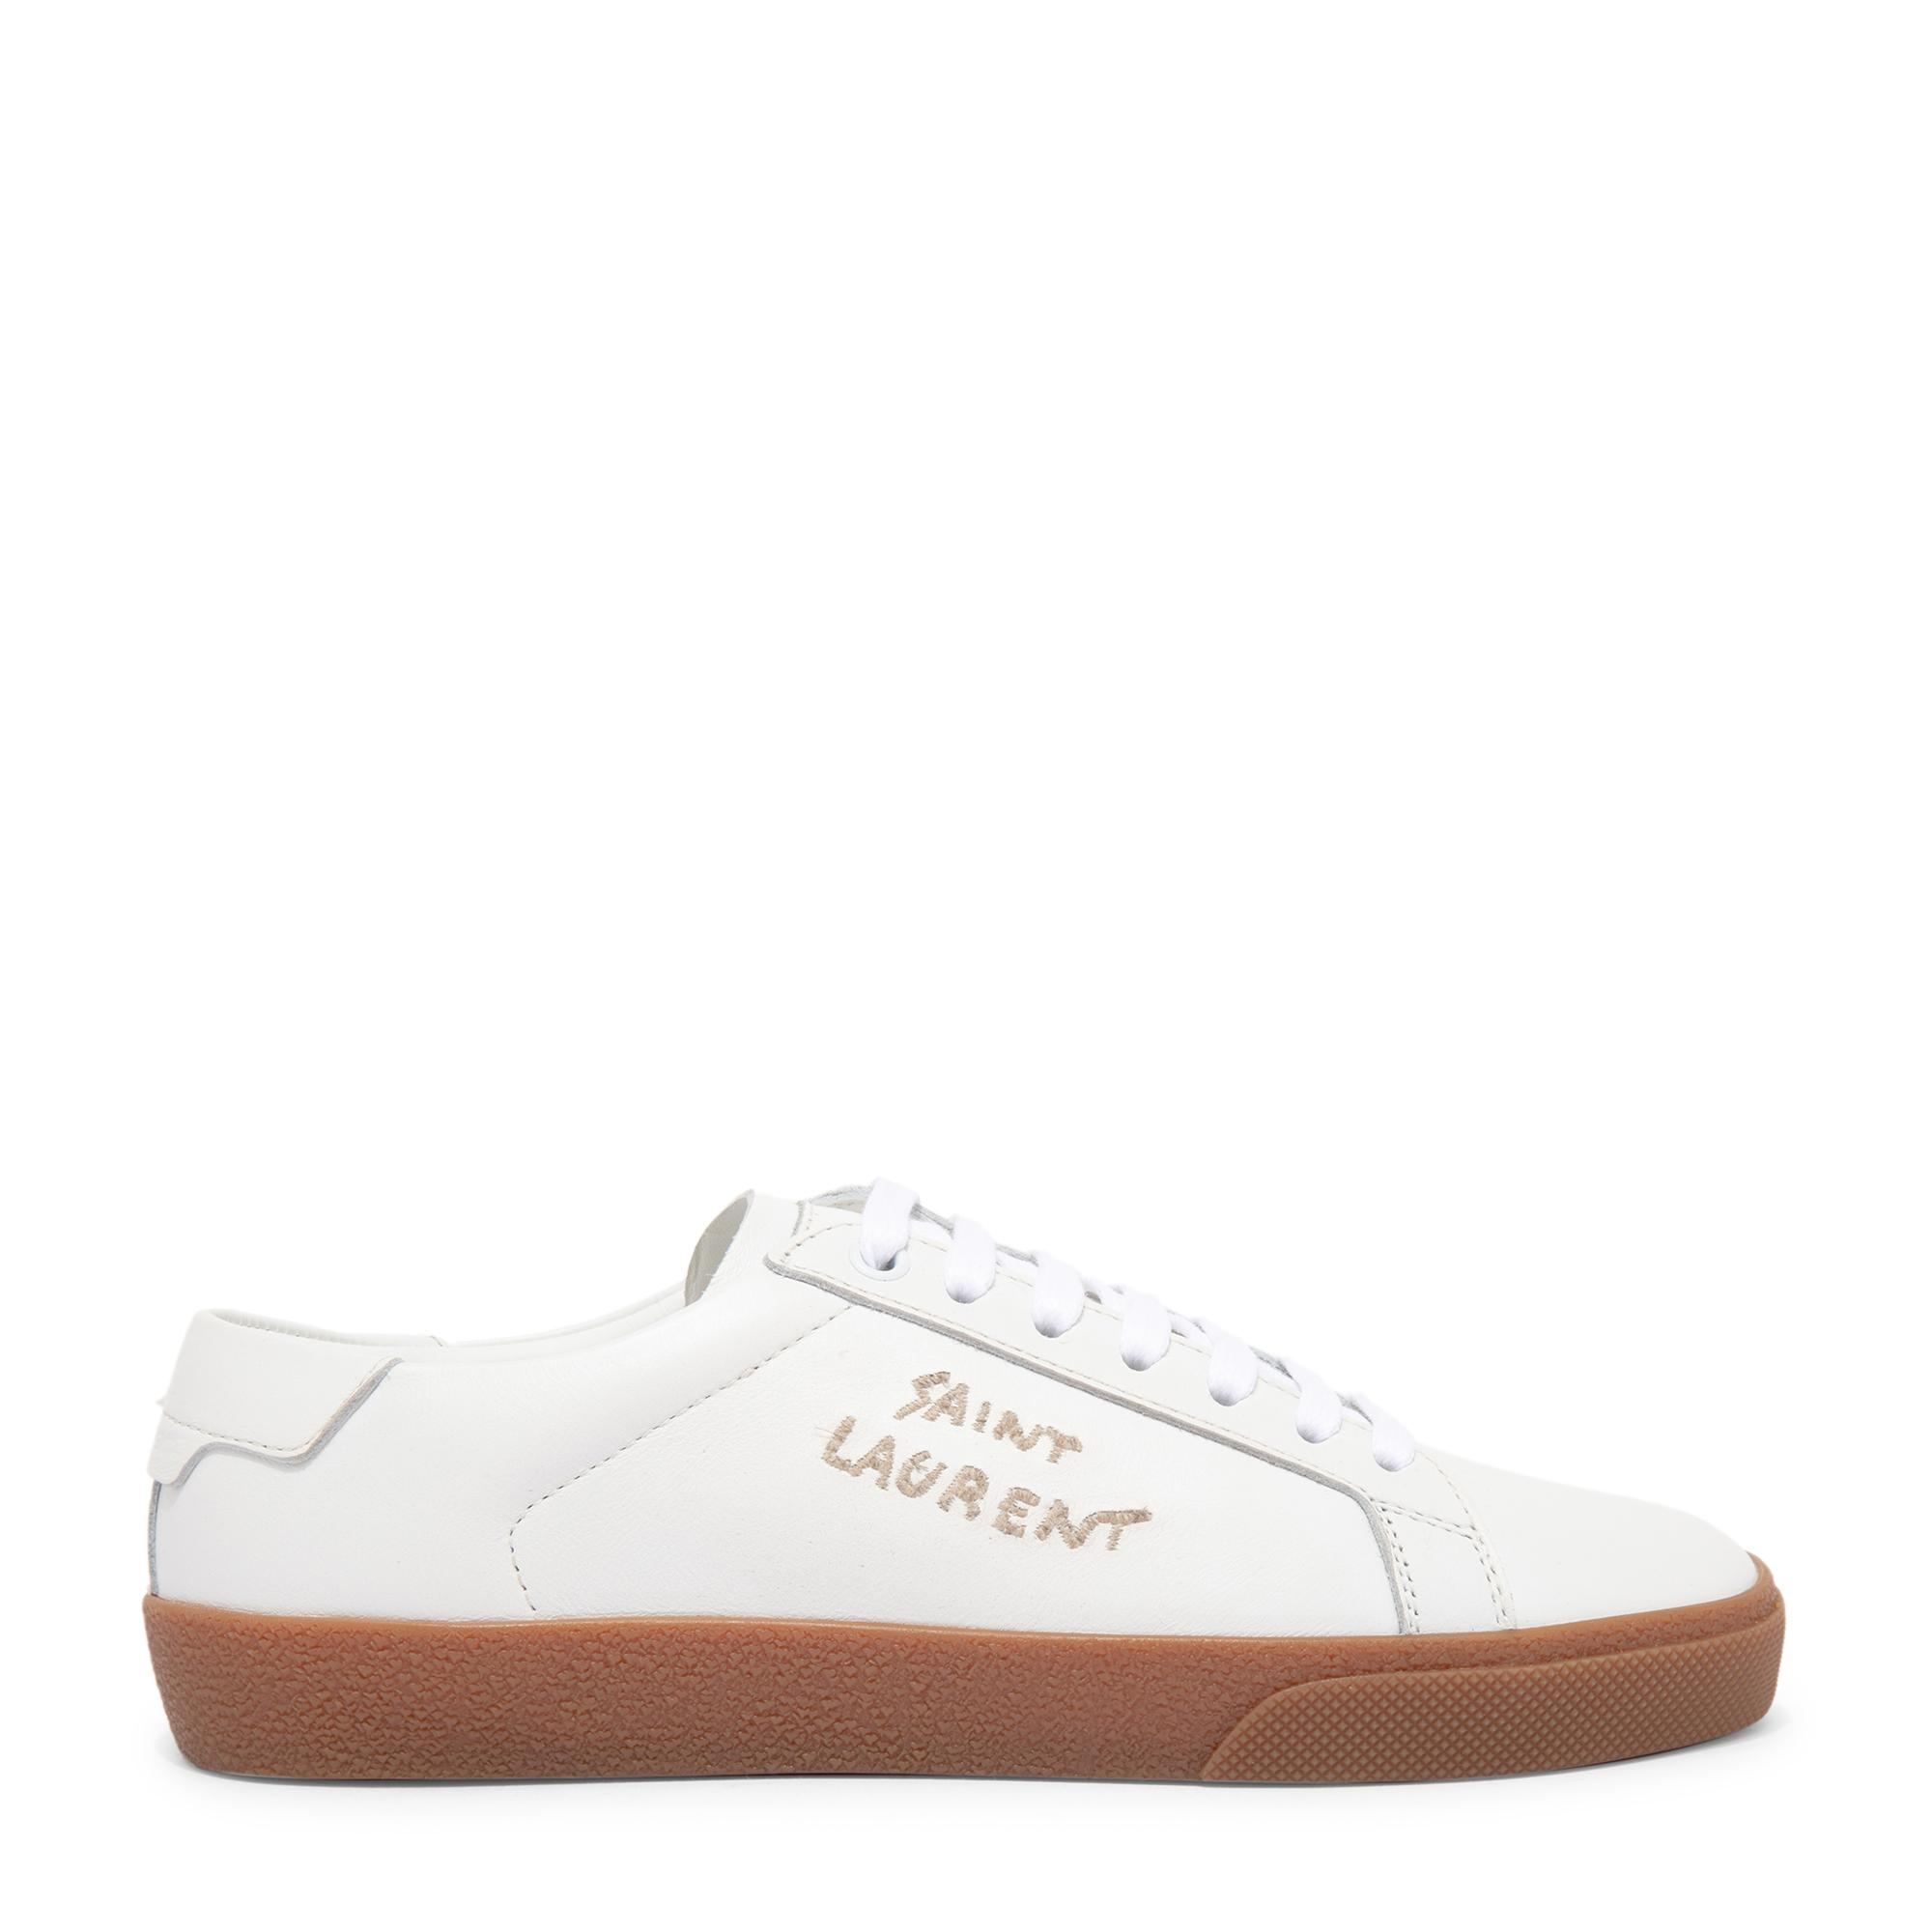 Court Classic sneakers